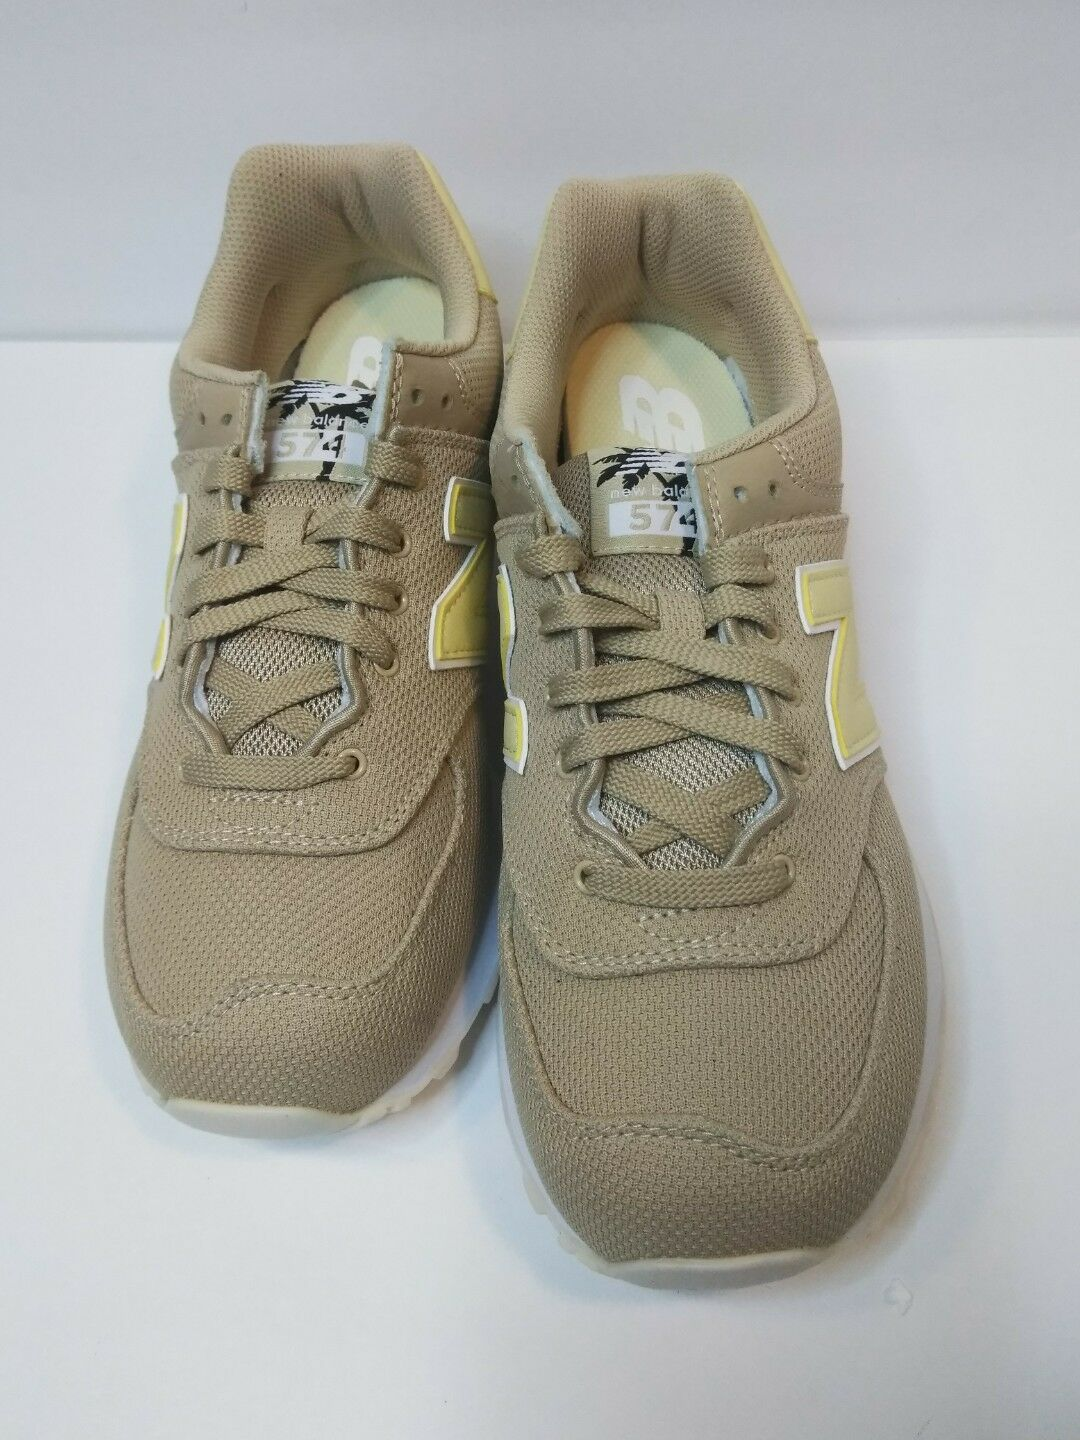 New Balance Womens Sneakers 9.5, 574 Miami Palms Sand Pollen WL574MIA